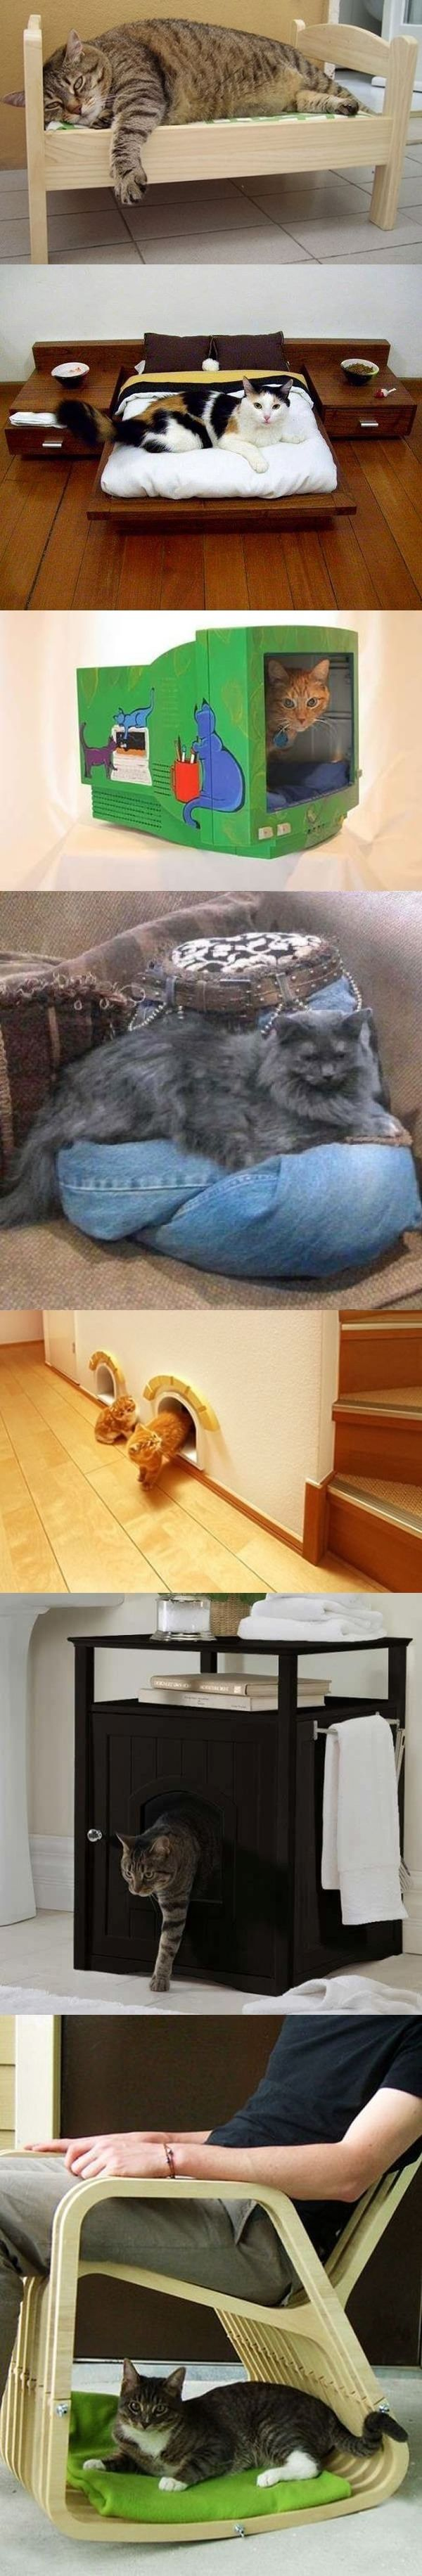 Cats need furniture too